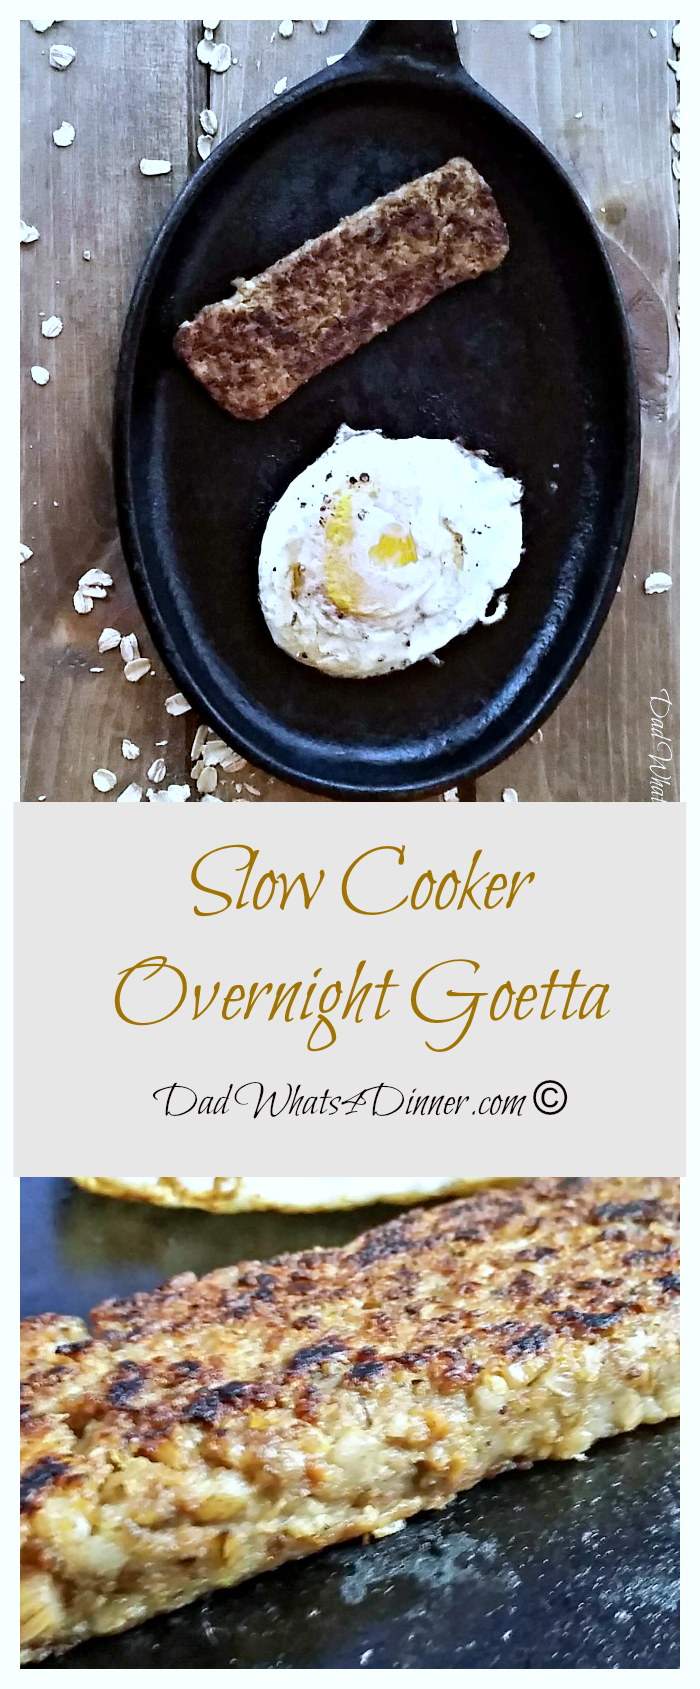 It's time for #Oktoberfest and my Slow Cooker Overnight #Goetta will hit the spot after a fun night of celebrating! #crockpot #slowcooker #breakfast www.dadwhats4dinner.com